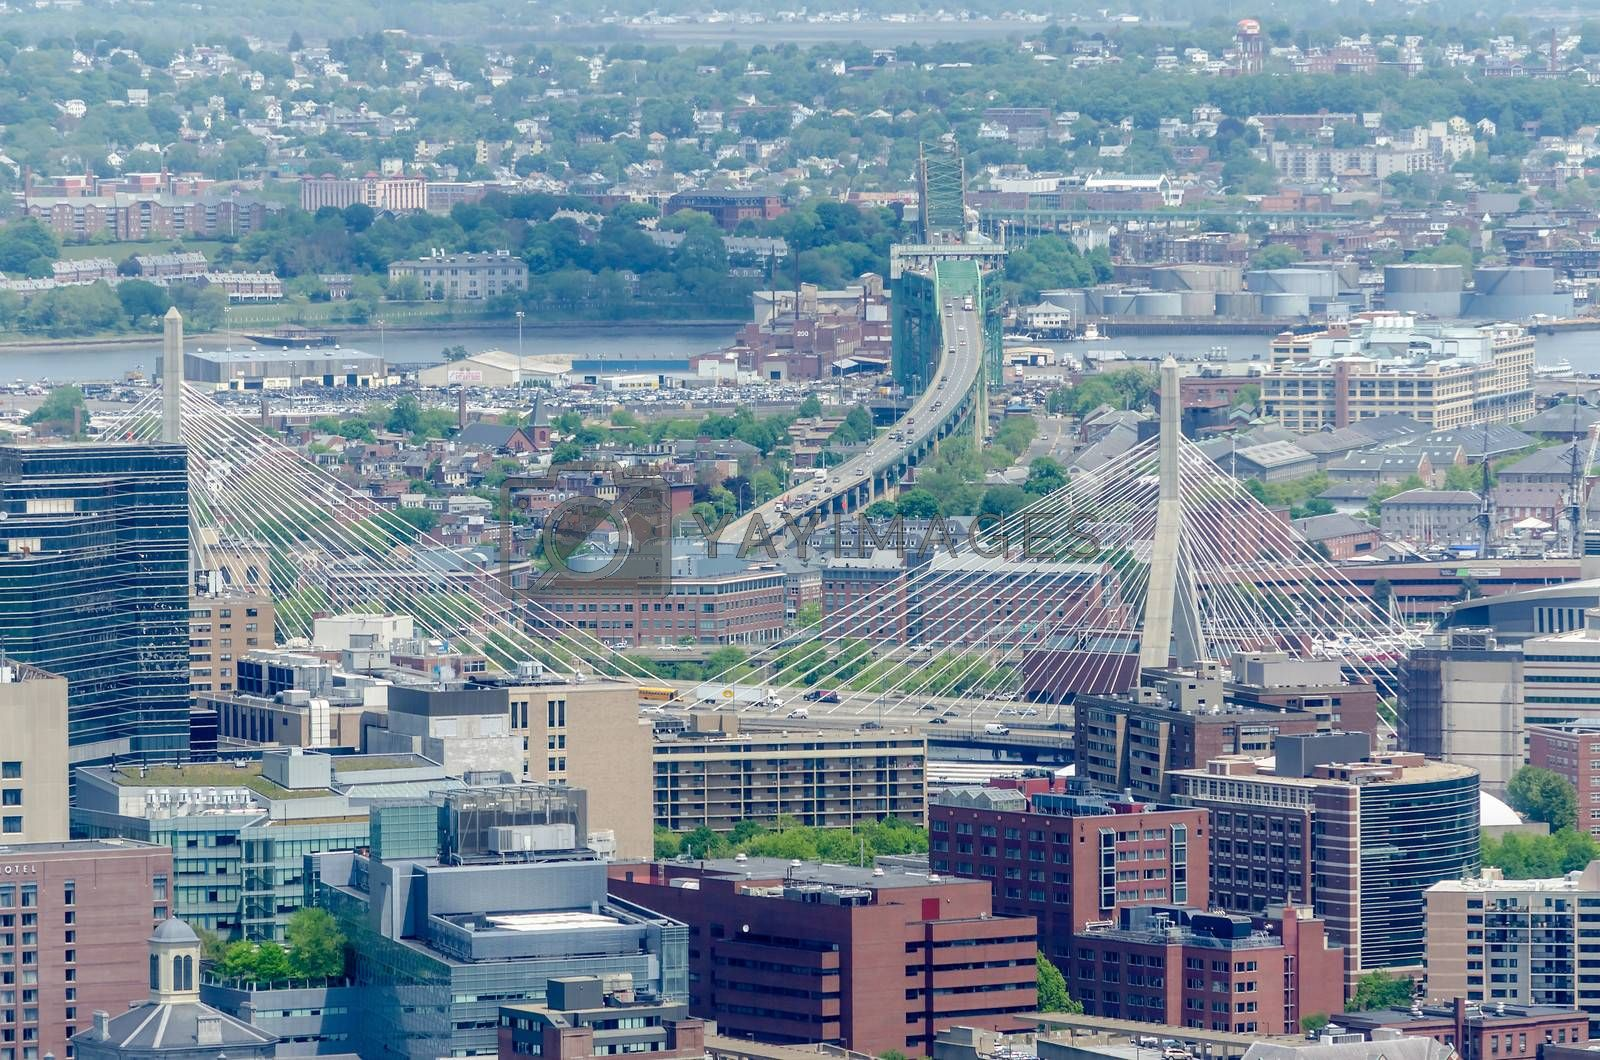 Aerial View of Central Boston from the Prudential Tower